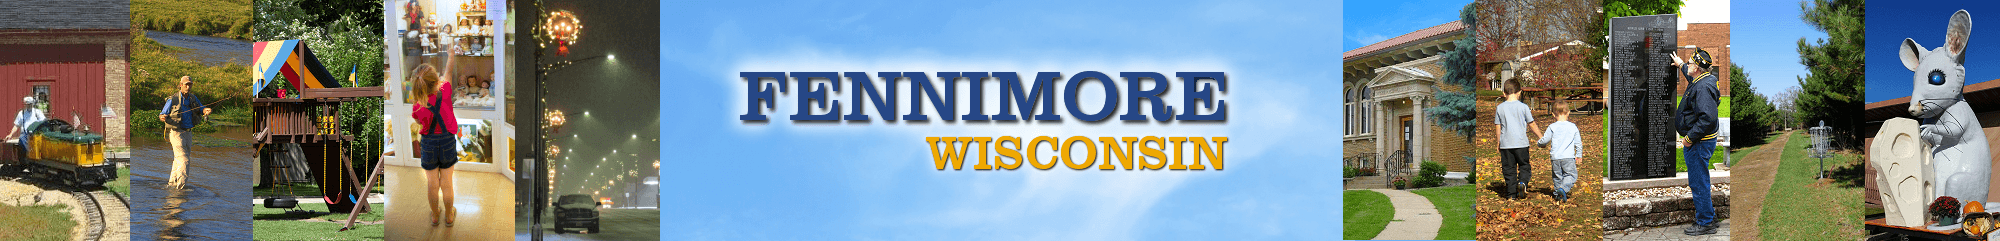 The City of Fennimore Wisconsin